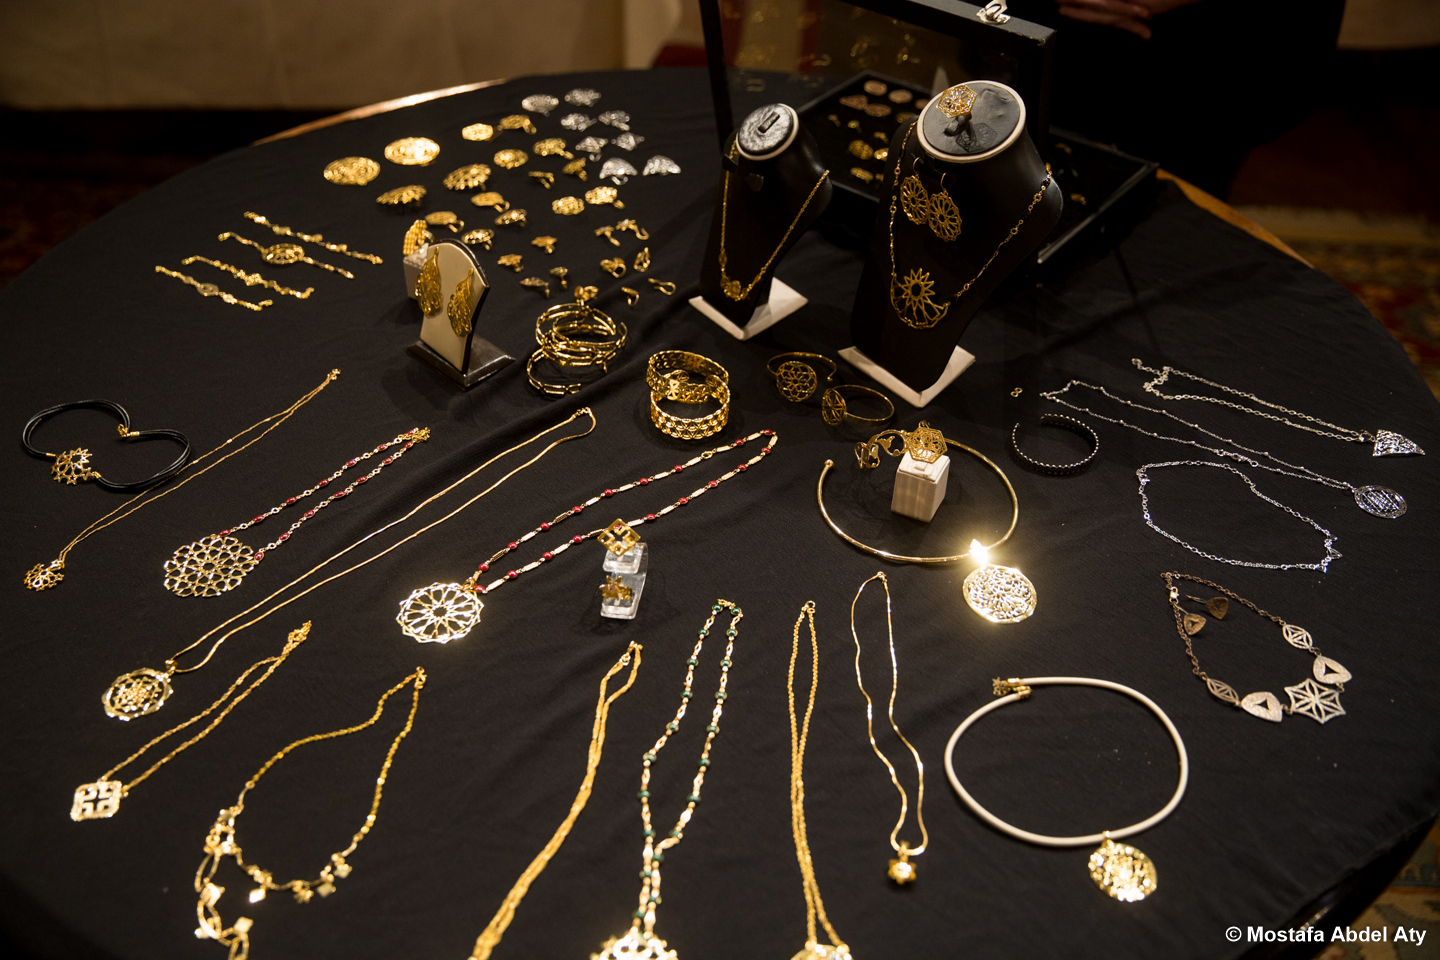 jewelry showcased at the exhibit